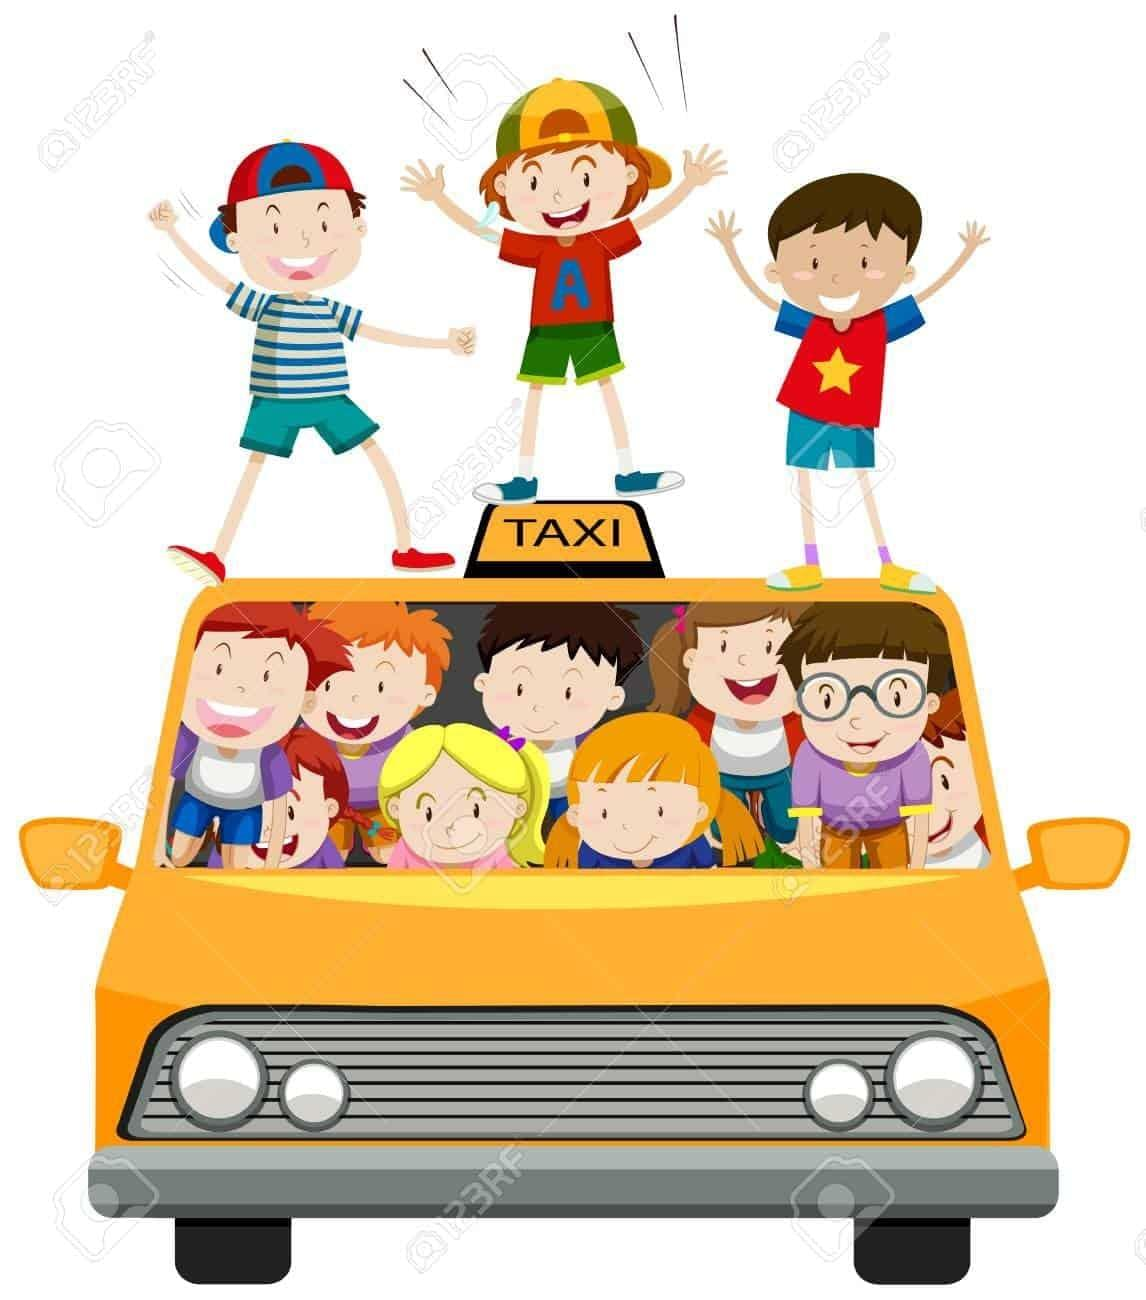 Children riding on taxi mini van